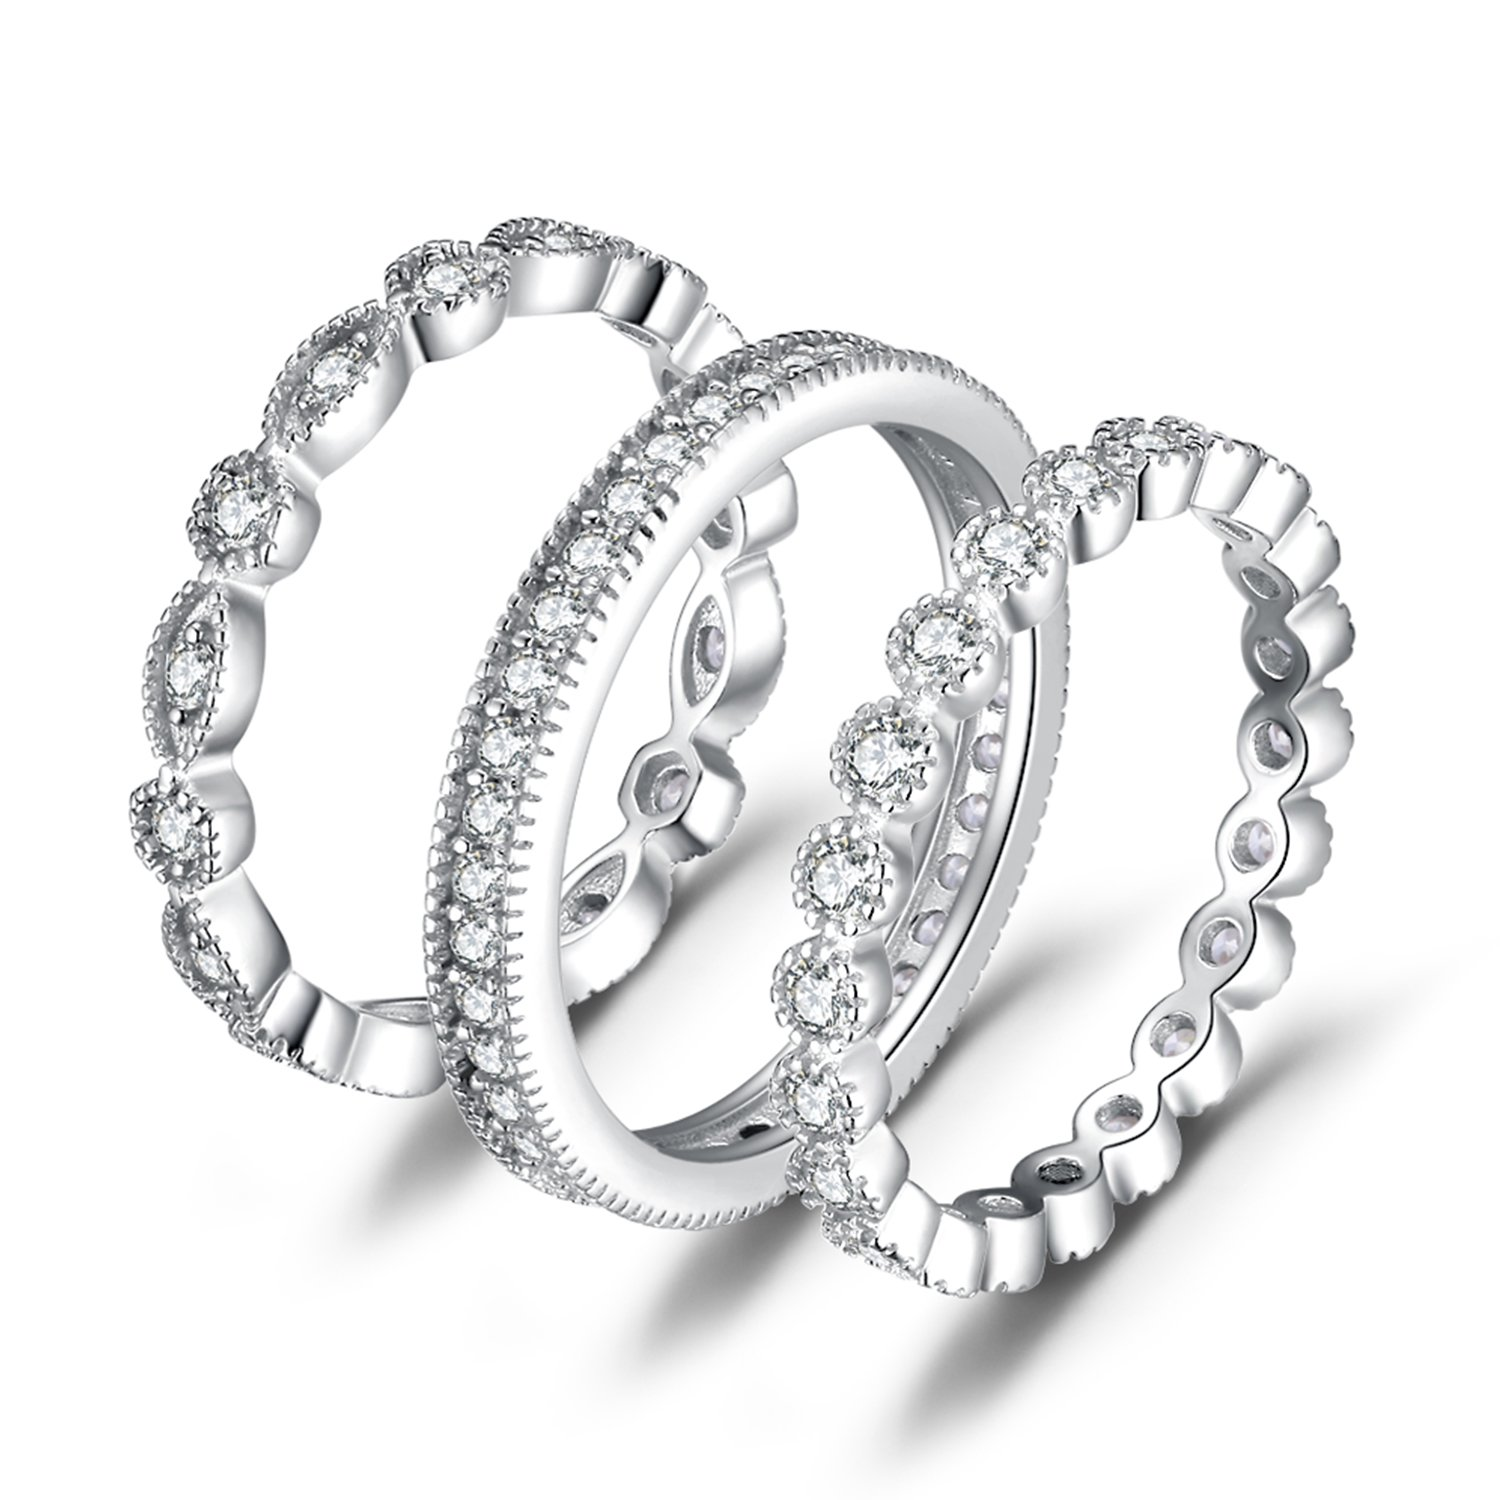 JewelryPalace Wedding Bands Rings Anniversary Eternity Bands 3 Stackable Rings Cubic Zircoina Engagement Bridal Milgrain Marquise Infinity 925 Sterling Silver Ring Sets for Women Size 7 by JewelryPalace